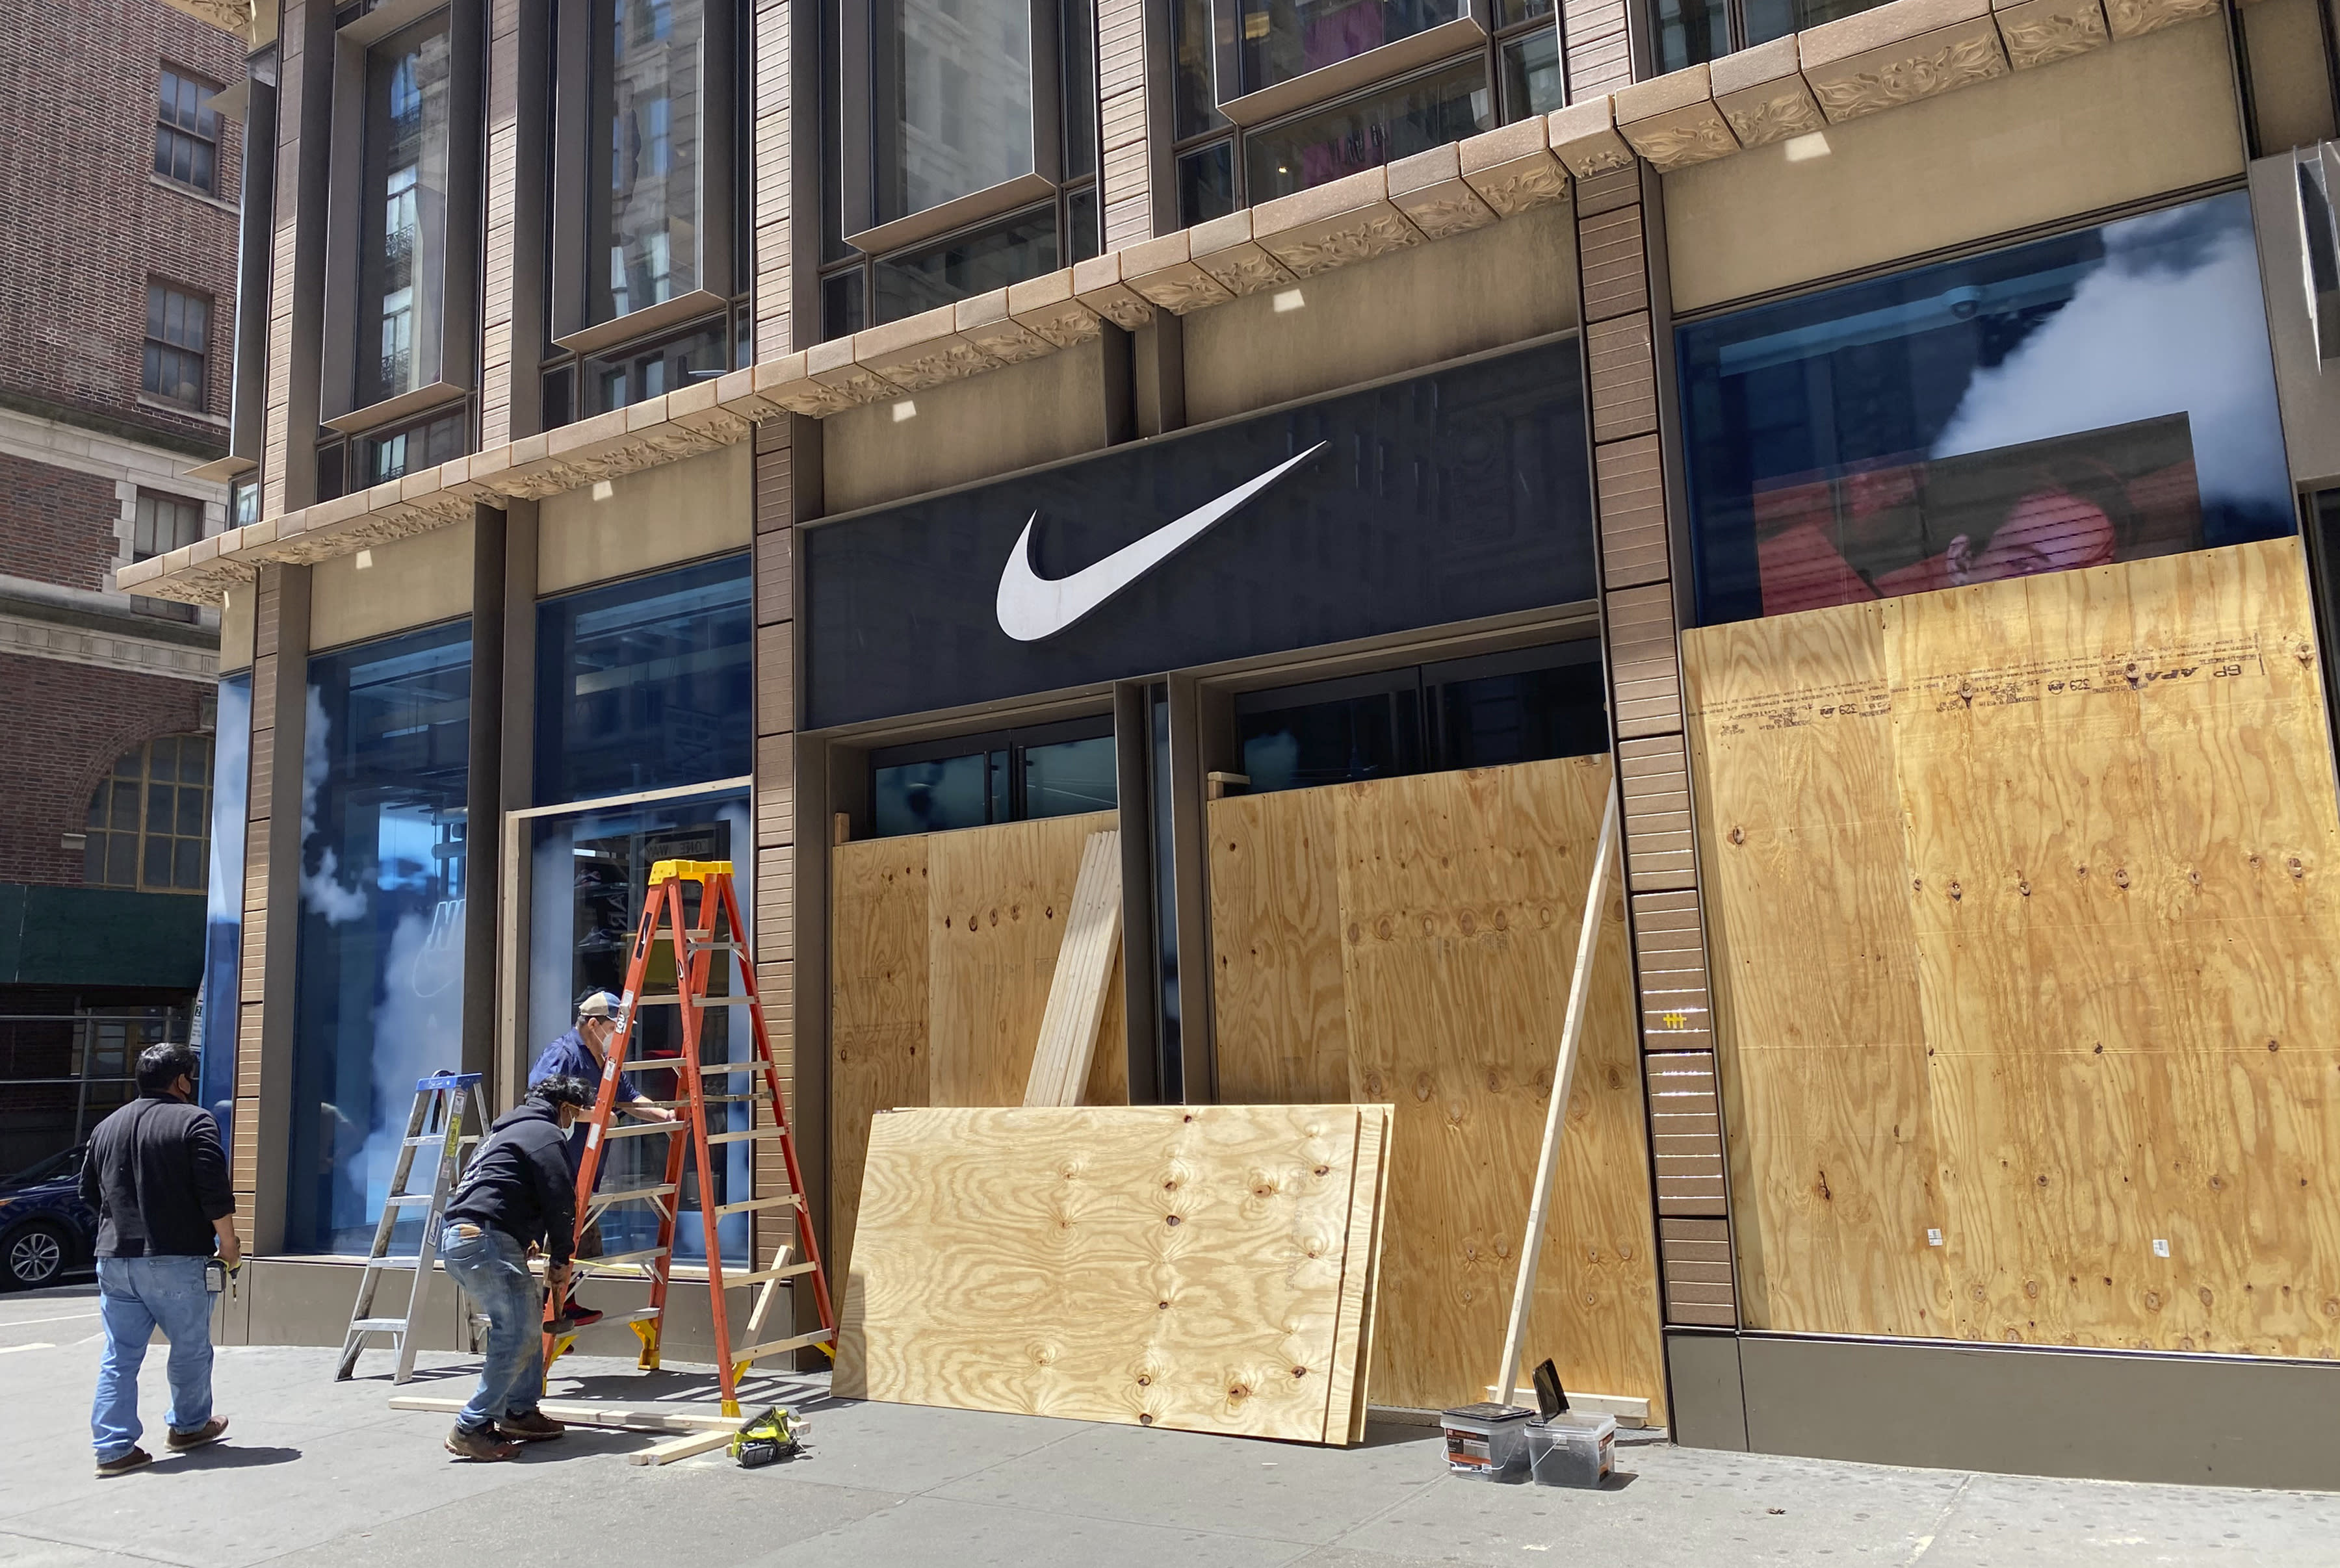 Nike's social media engagement soars after its response to the death of George Floyd